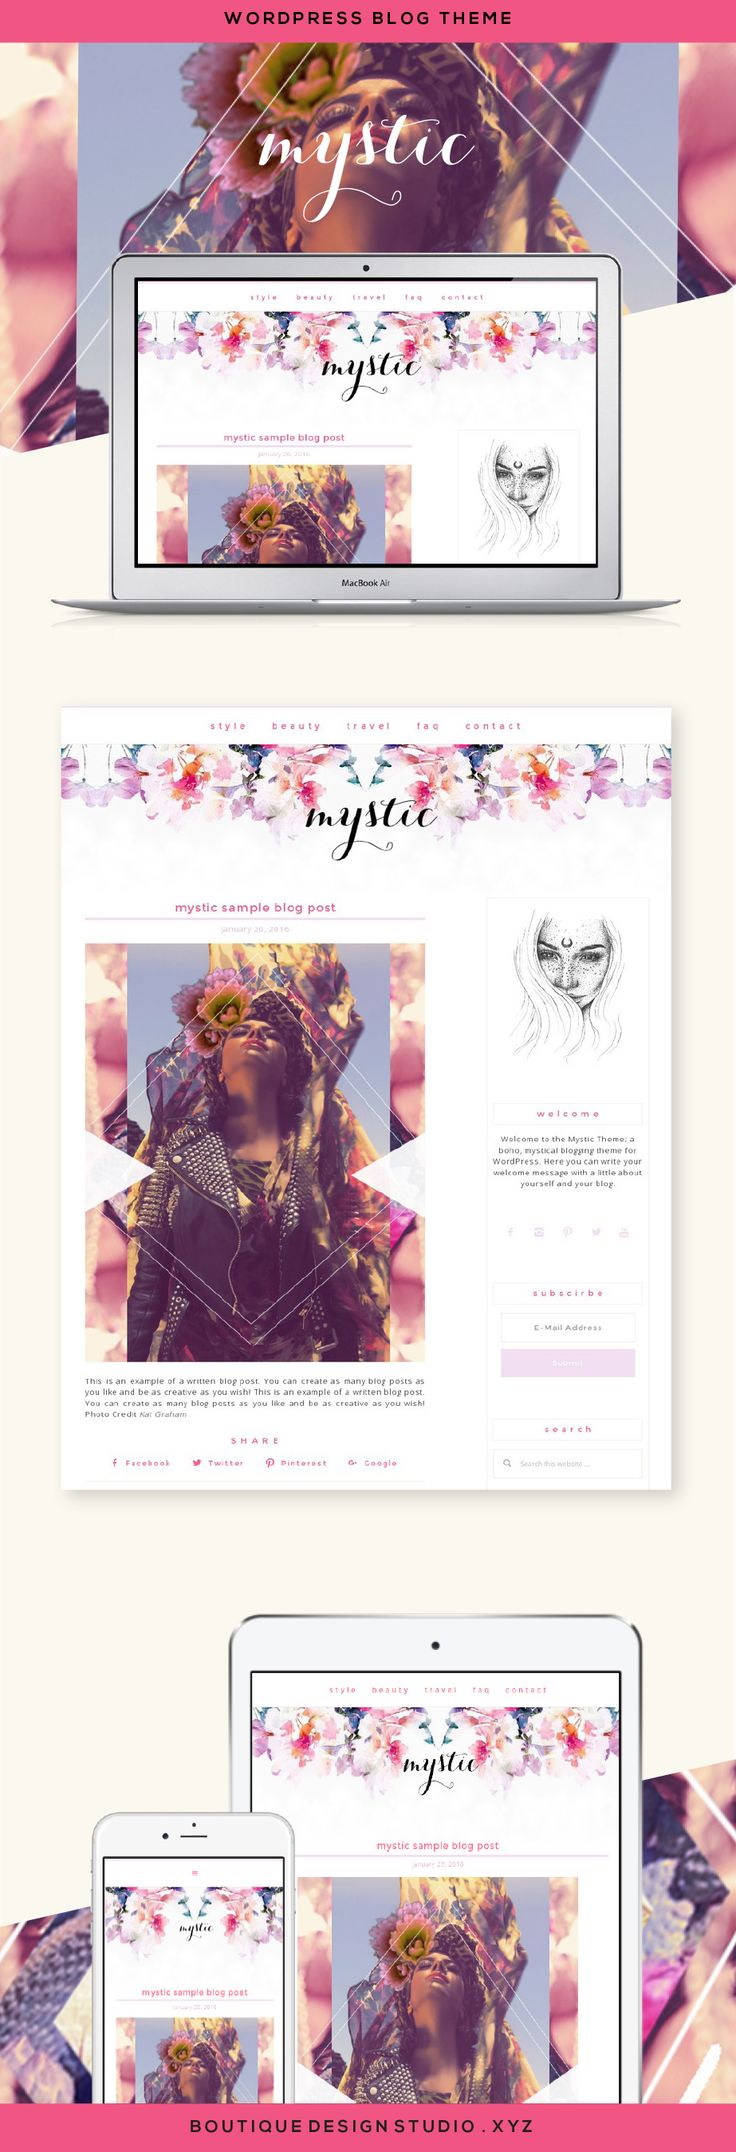 Mystic Wordpress Theme By Boutique Web Design Studio Ideal For A Fashion Personal Blog